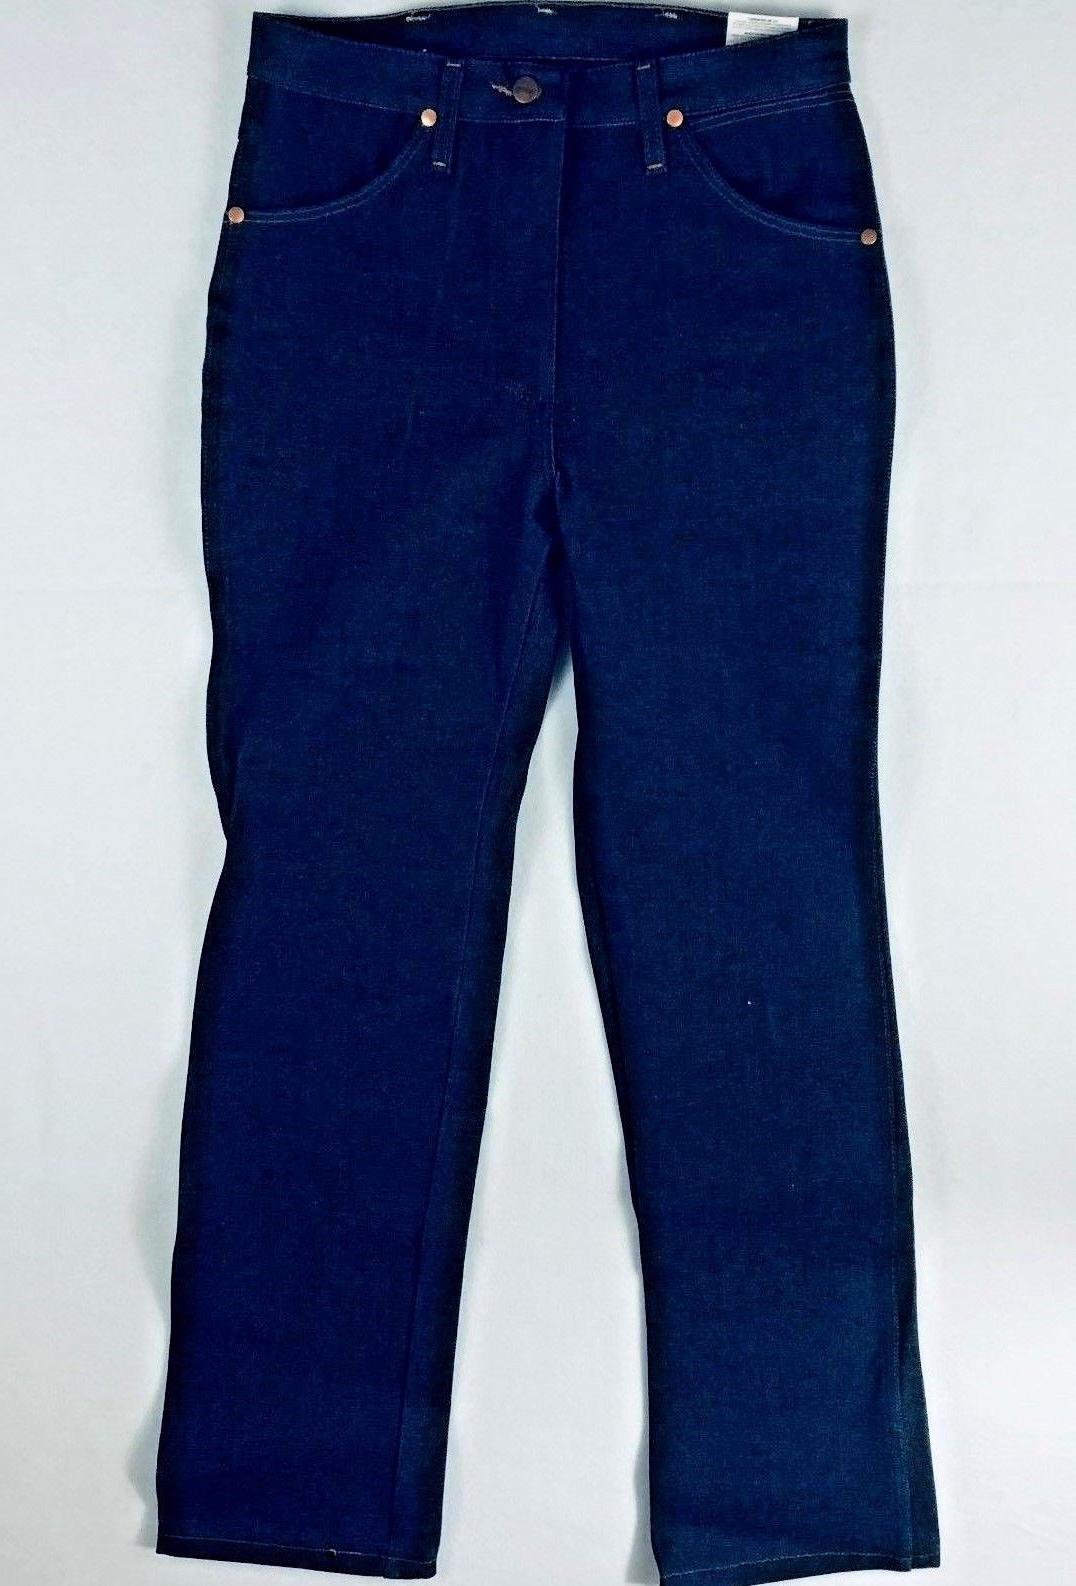 Men's Wrangler Jeans Cut Rigid Denim Bootcut